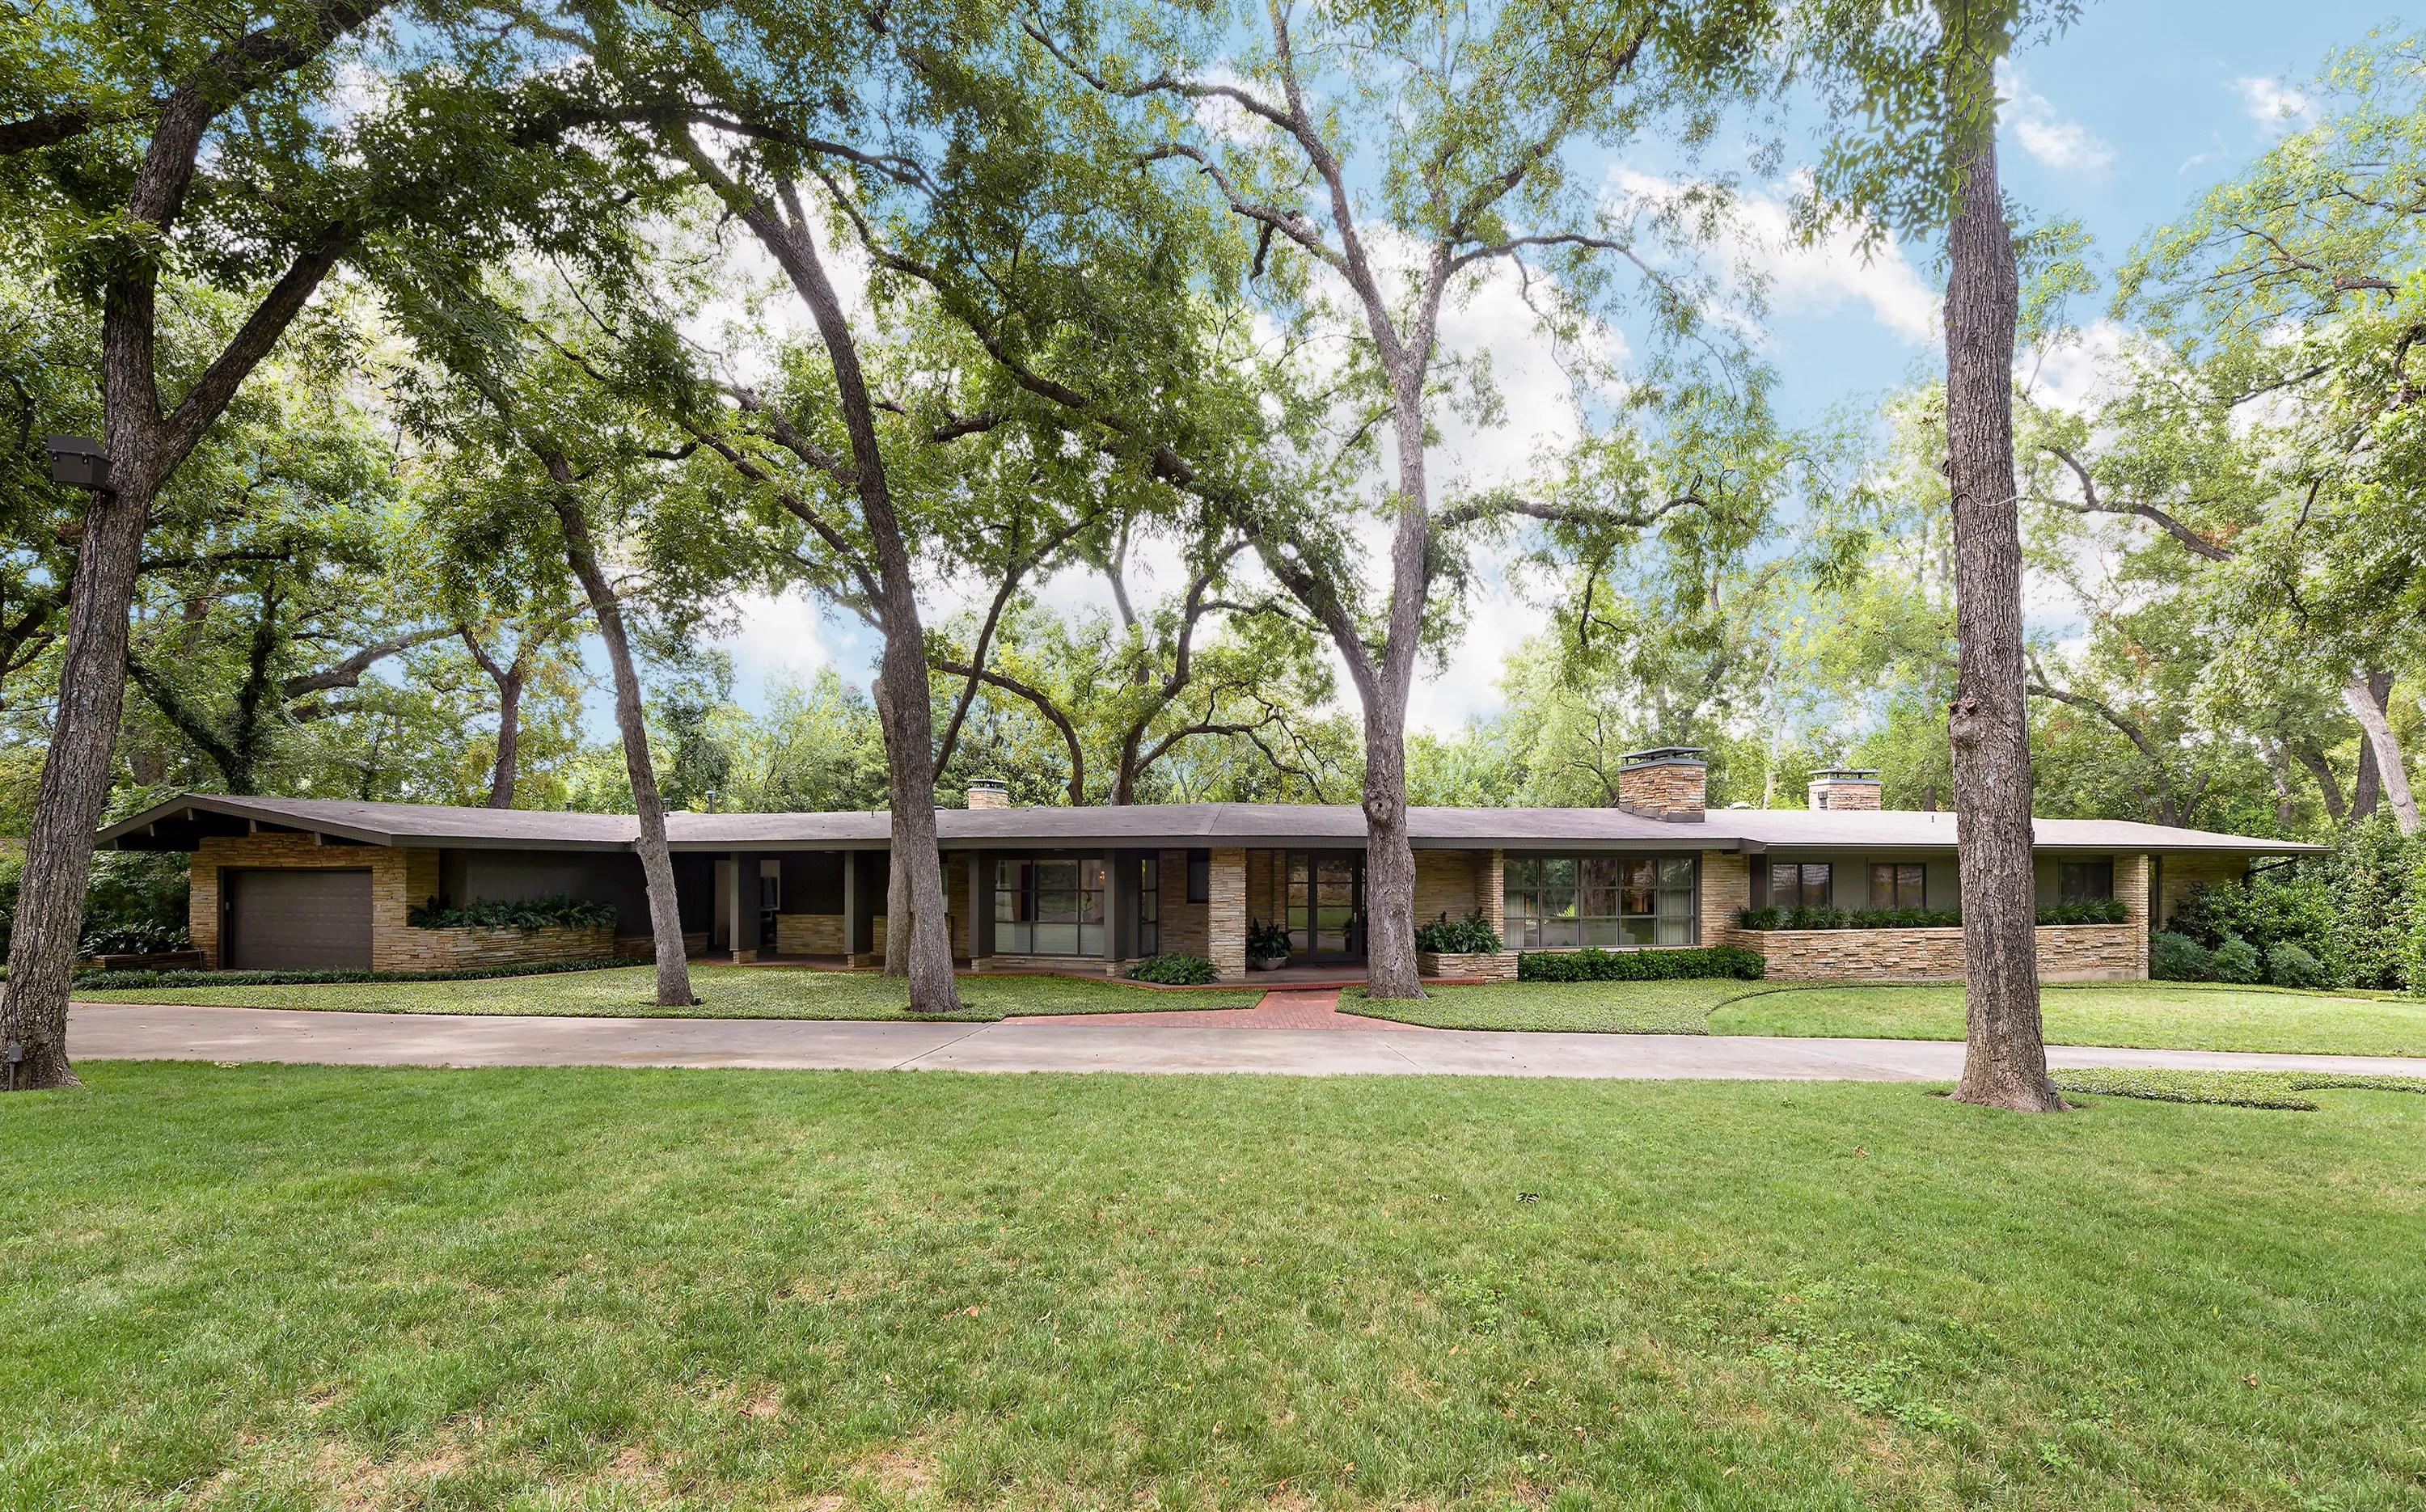 Dallas Texas Midcentury Modern Home for Sale